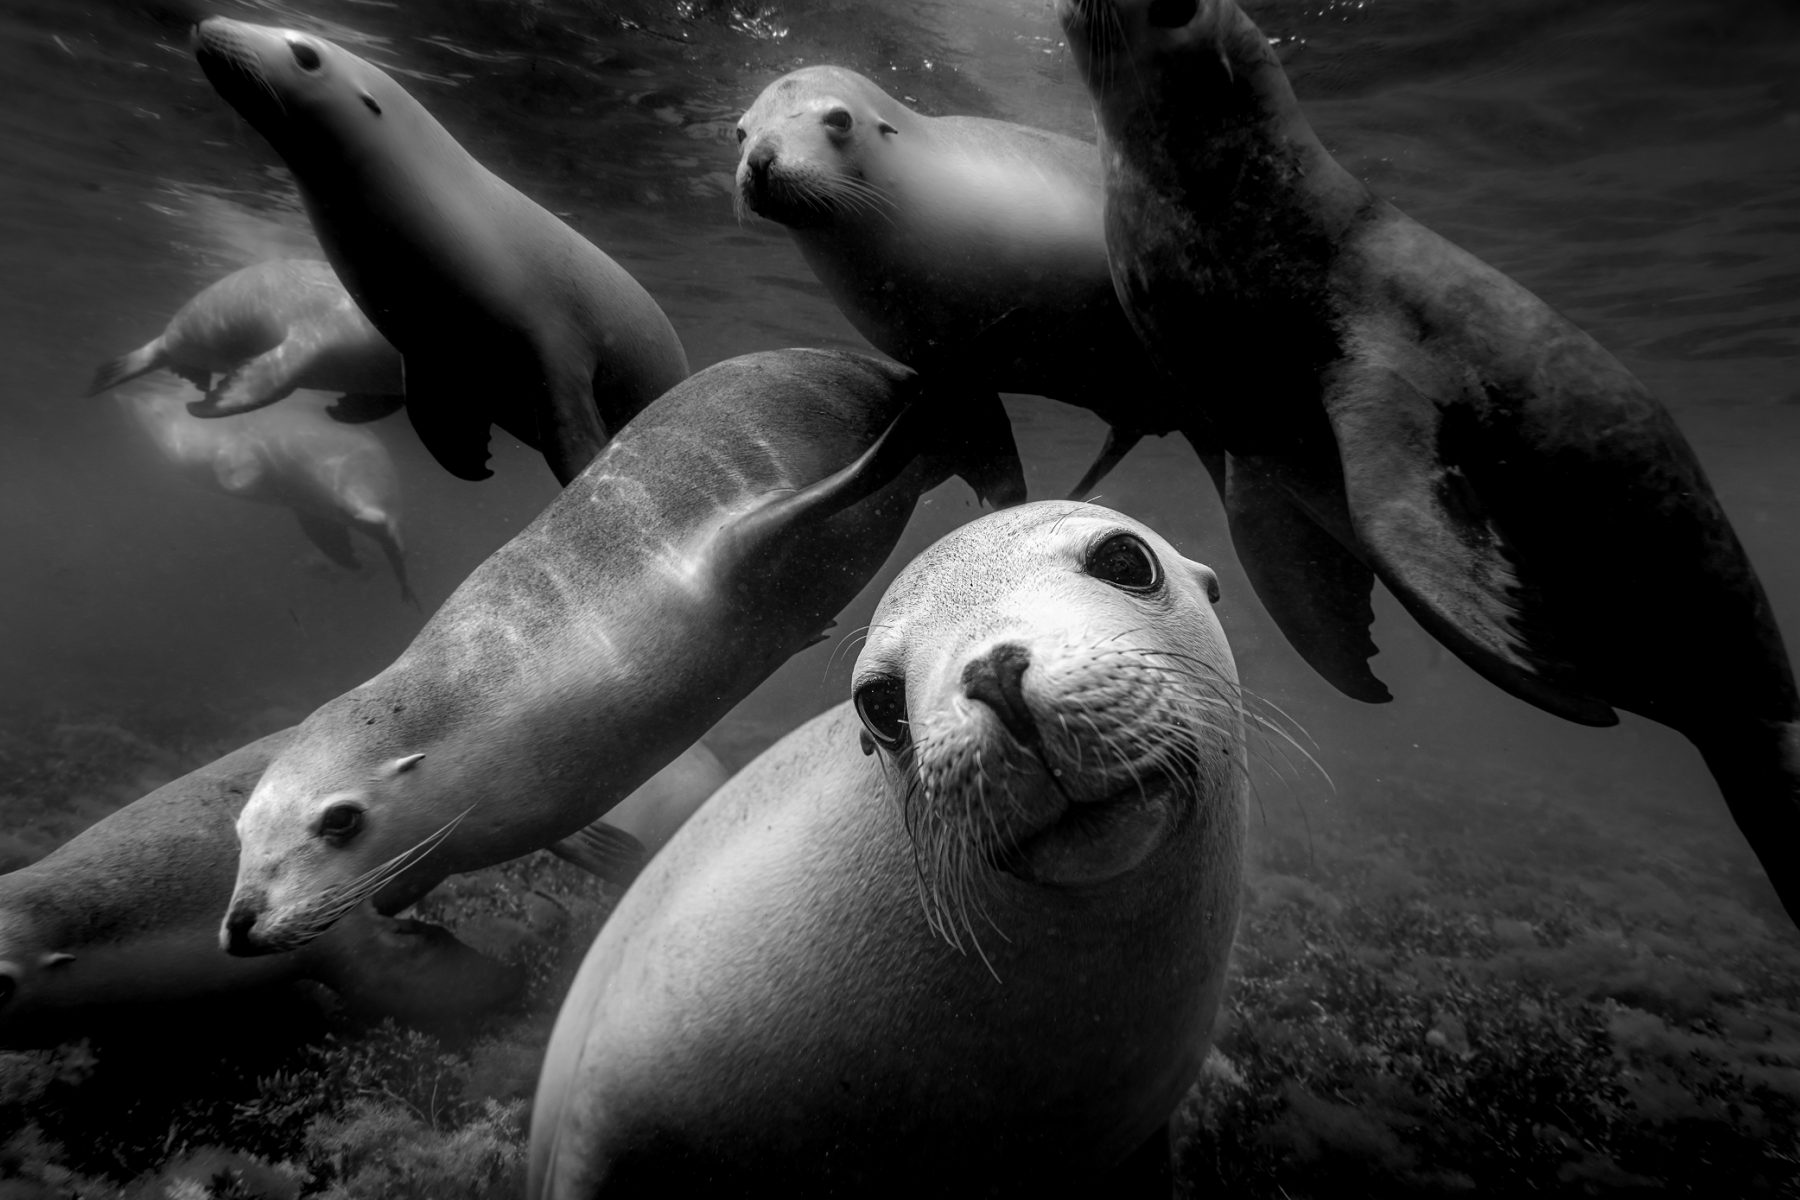 Black and white underwater photography by Matthew Bagley. Sea lions, ocean, marine